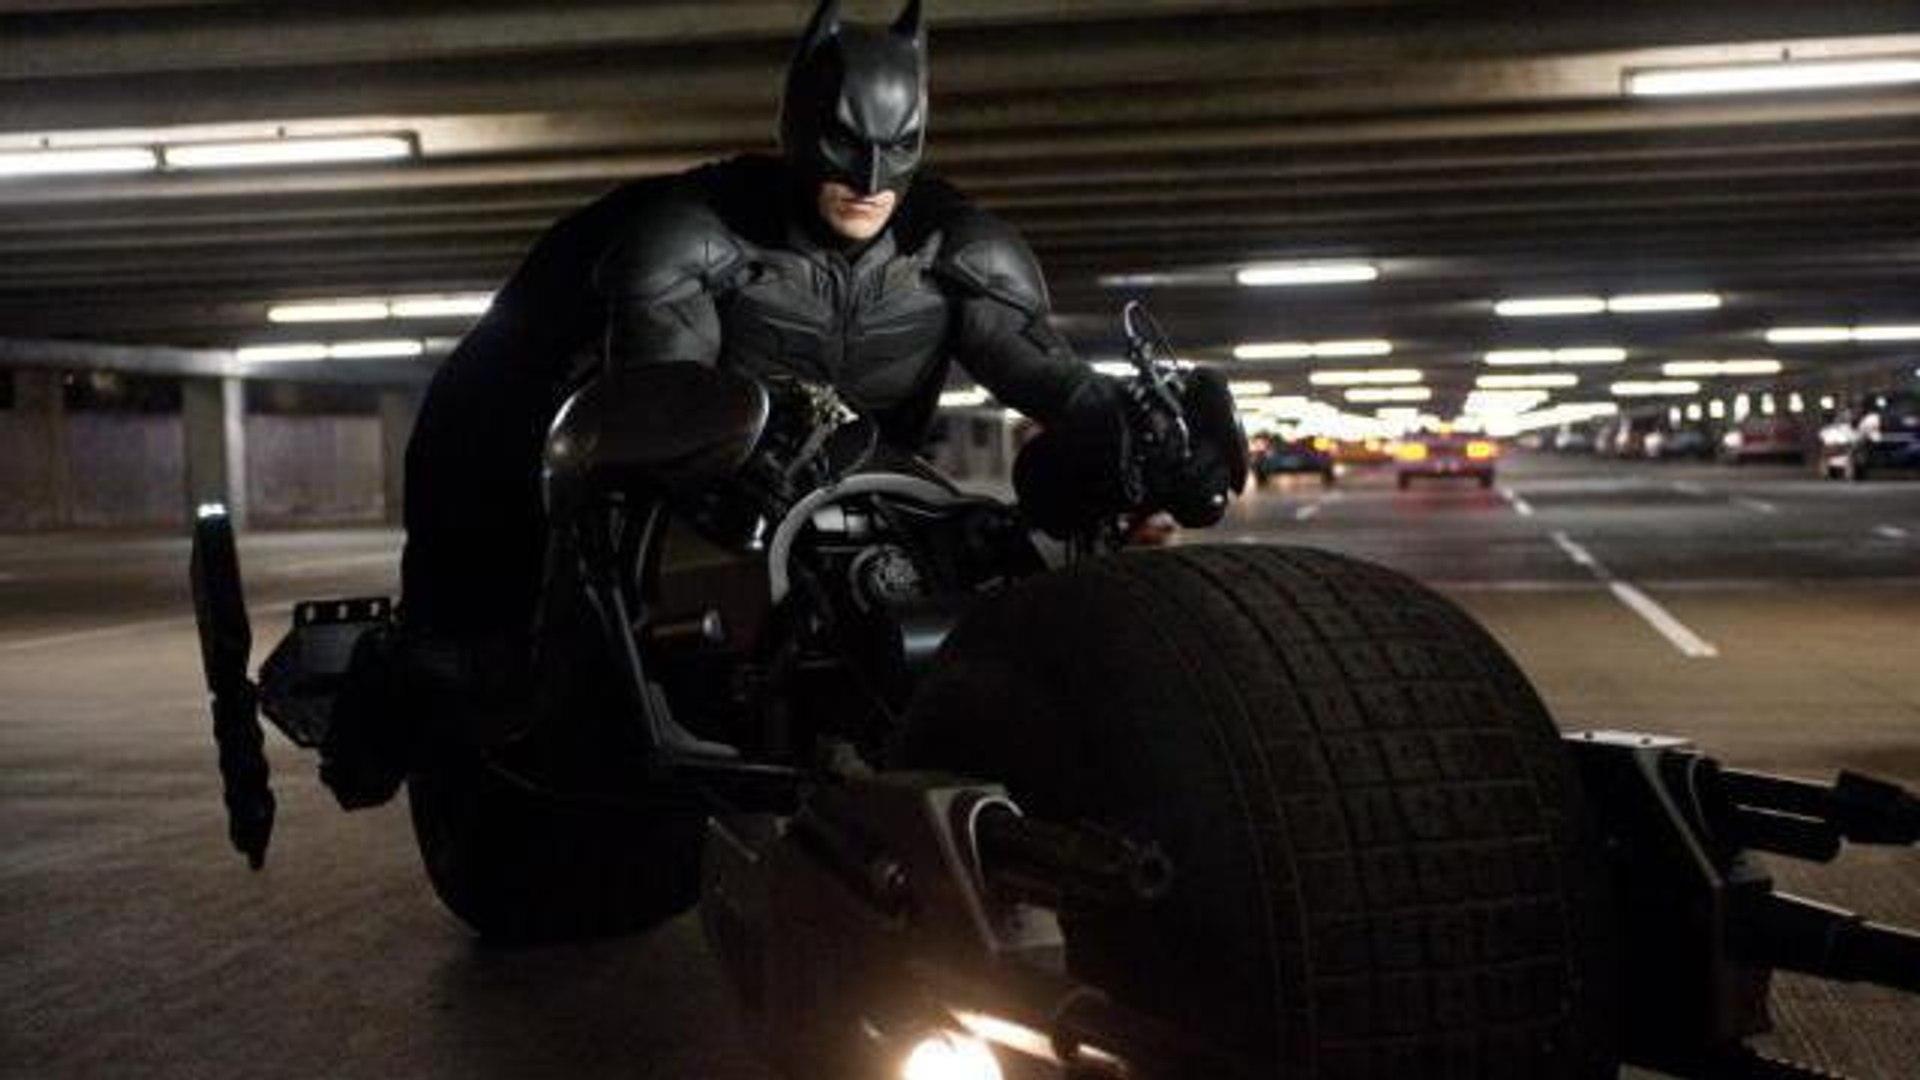 Batman 80 Years of Technology: la mostra milanese per gli 80 anni del supereroe